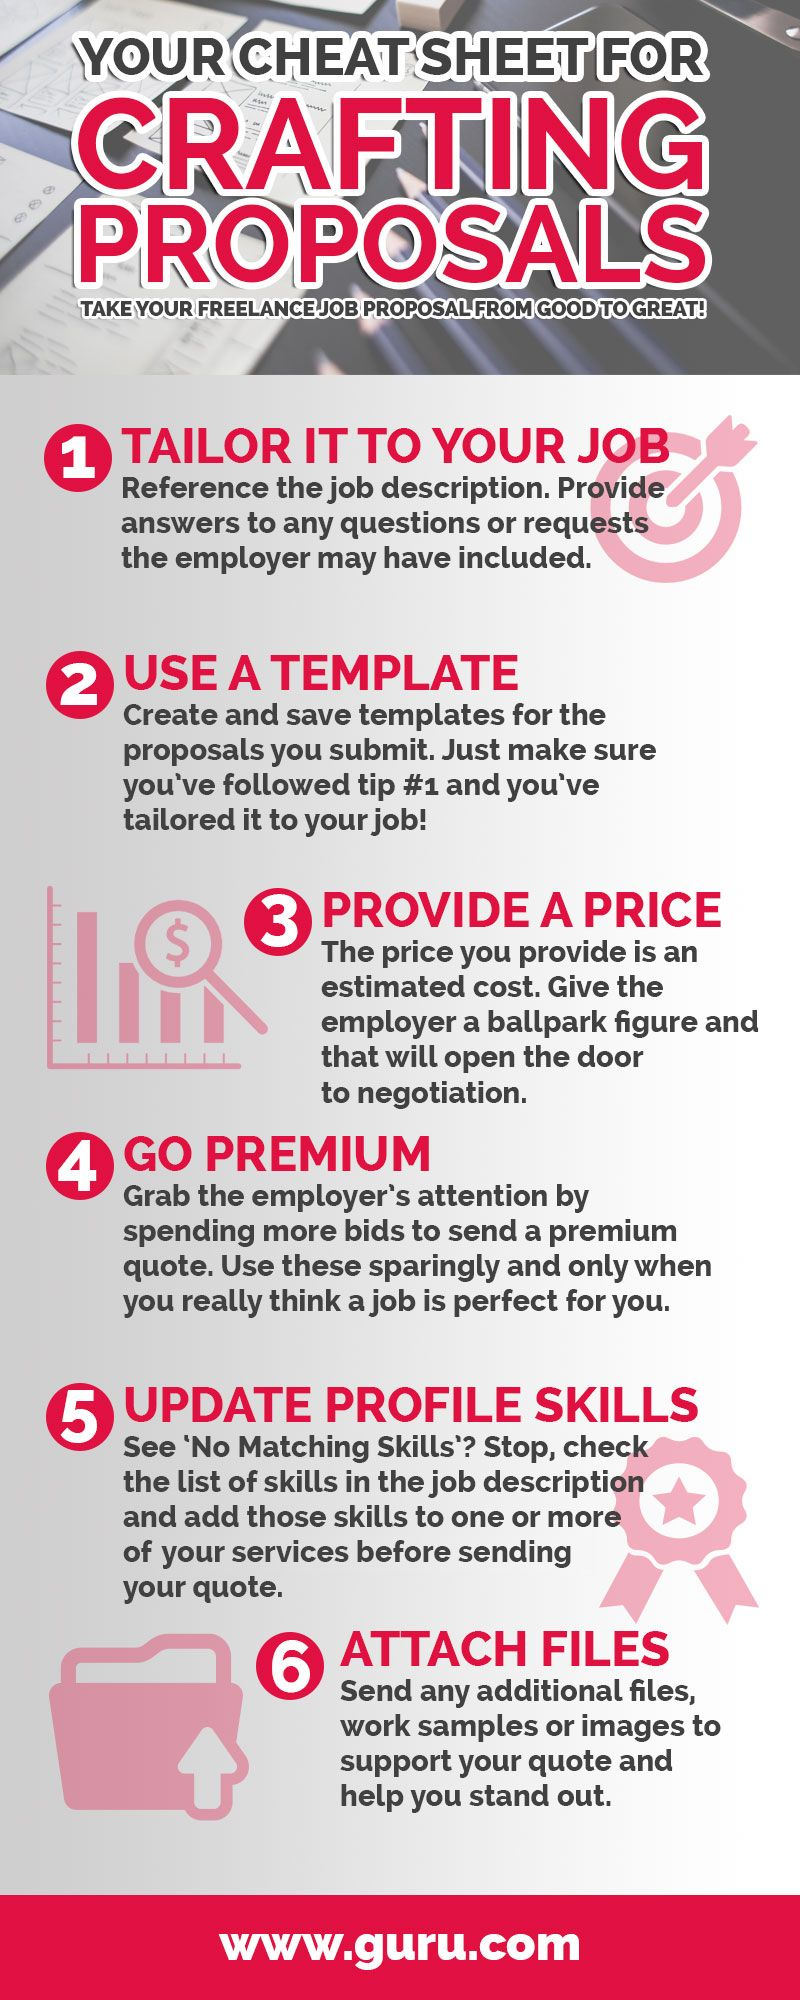 Ready to submit a quote for a job, but not sure what to include? Let this cheat sheet be your guide: http://bit.ly/1FdSnZ1 #freelancing #freelancetips